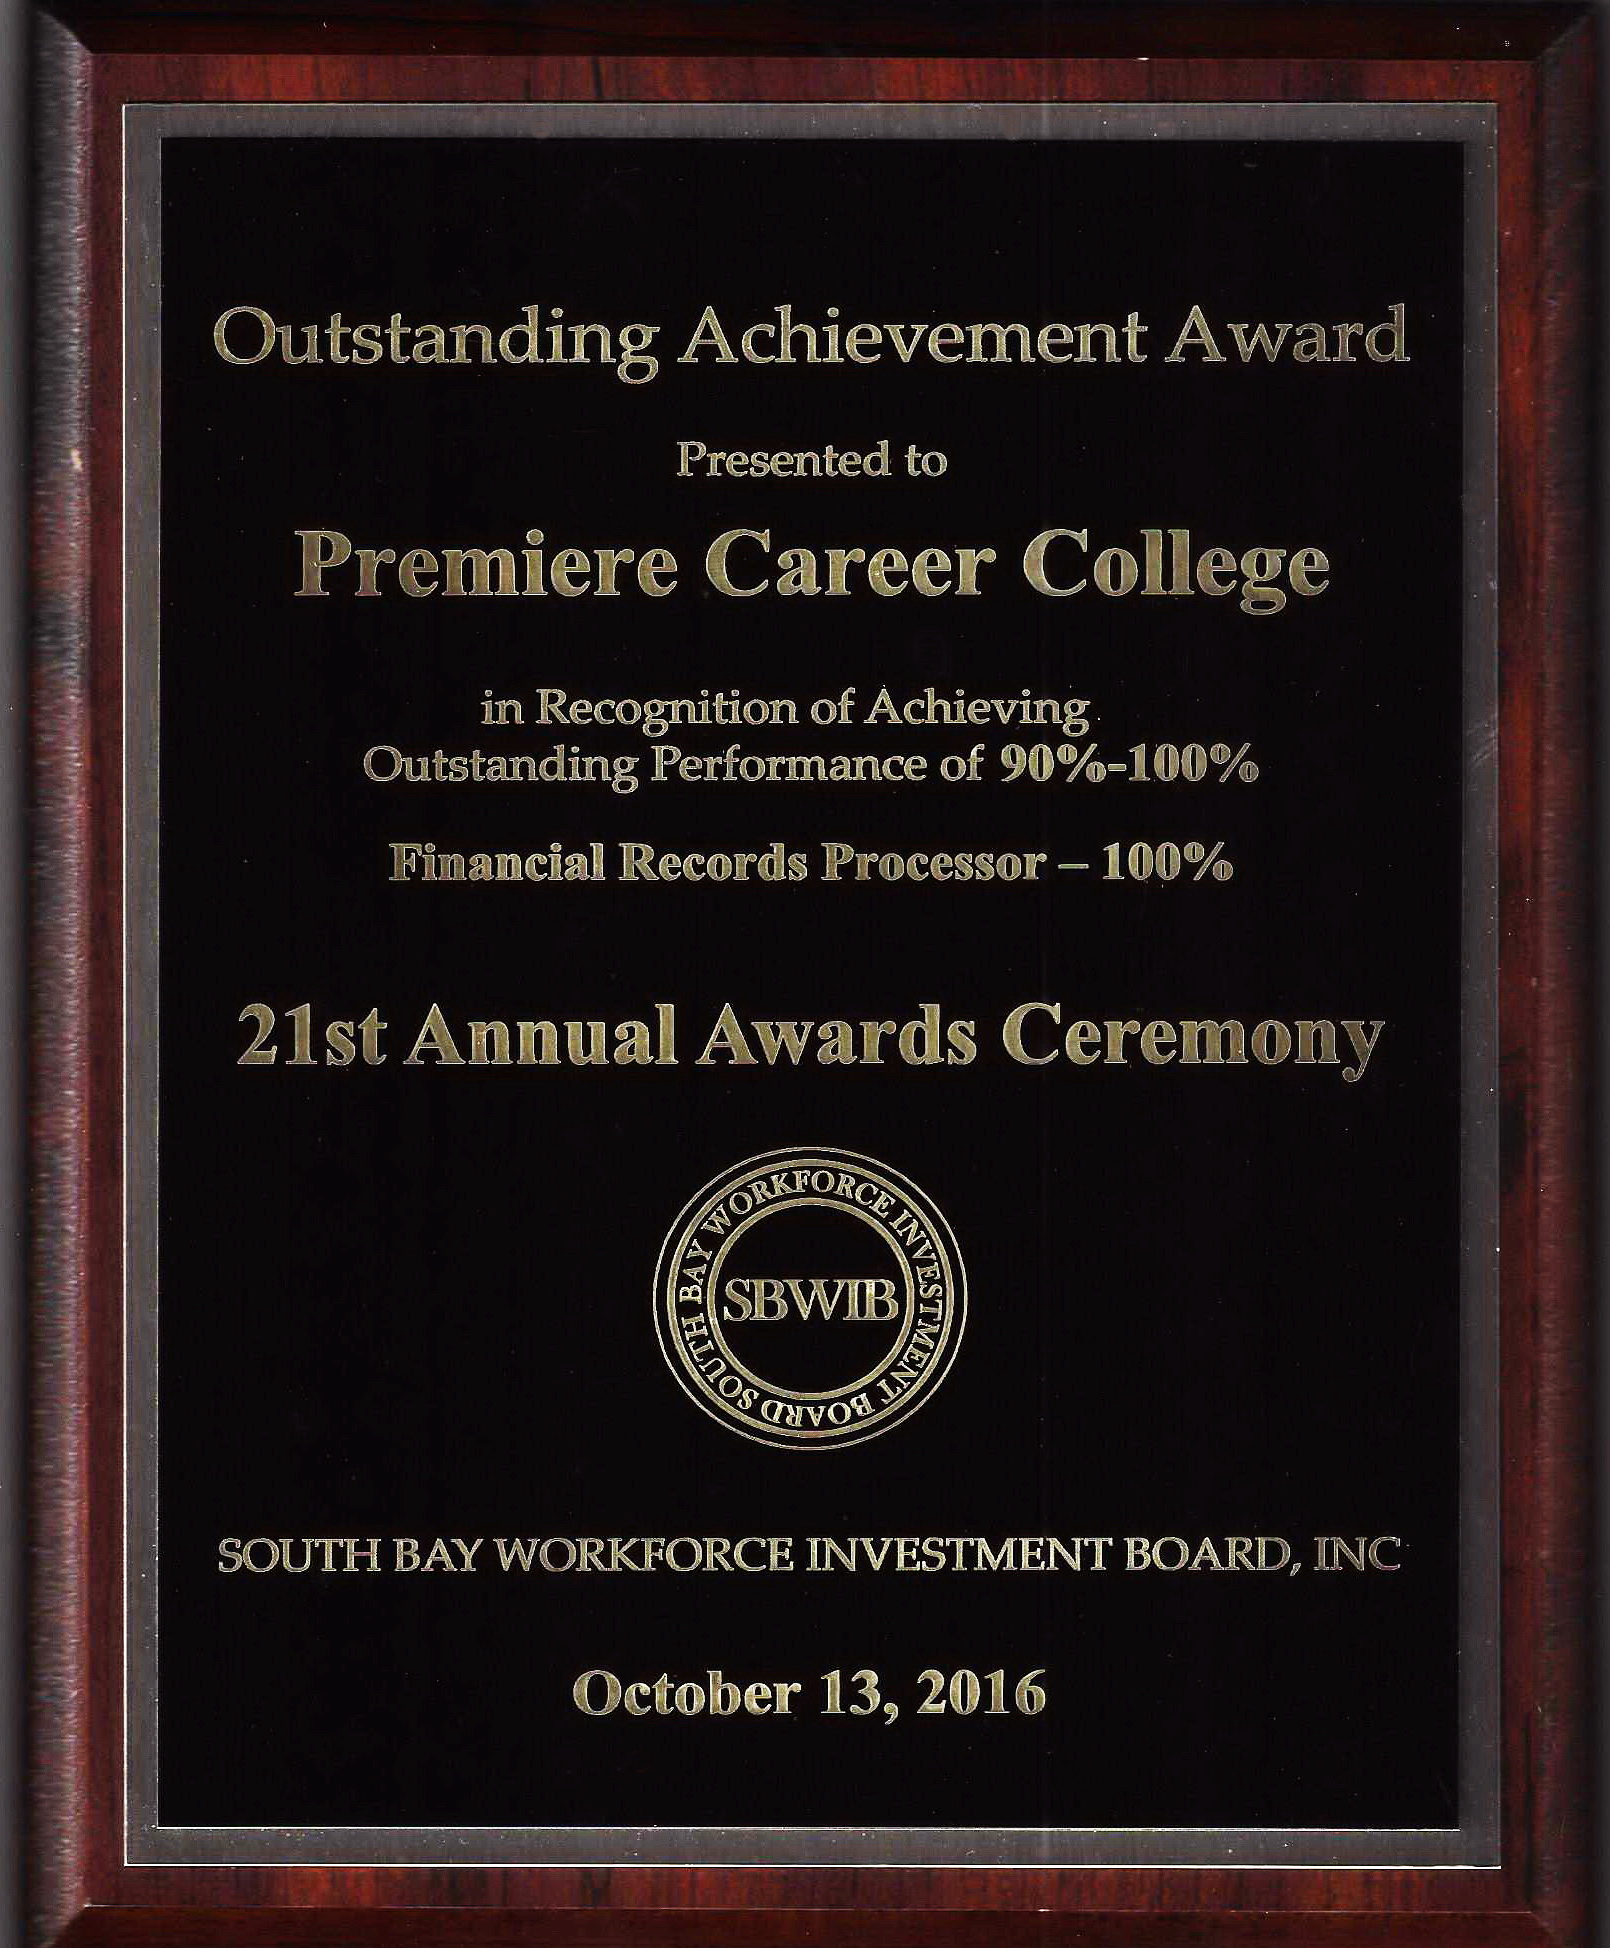 outstanding achievement award presented to premiere career college